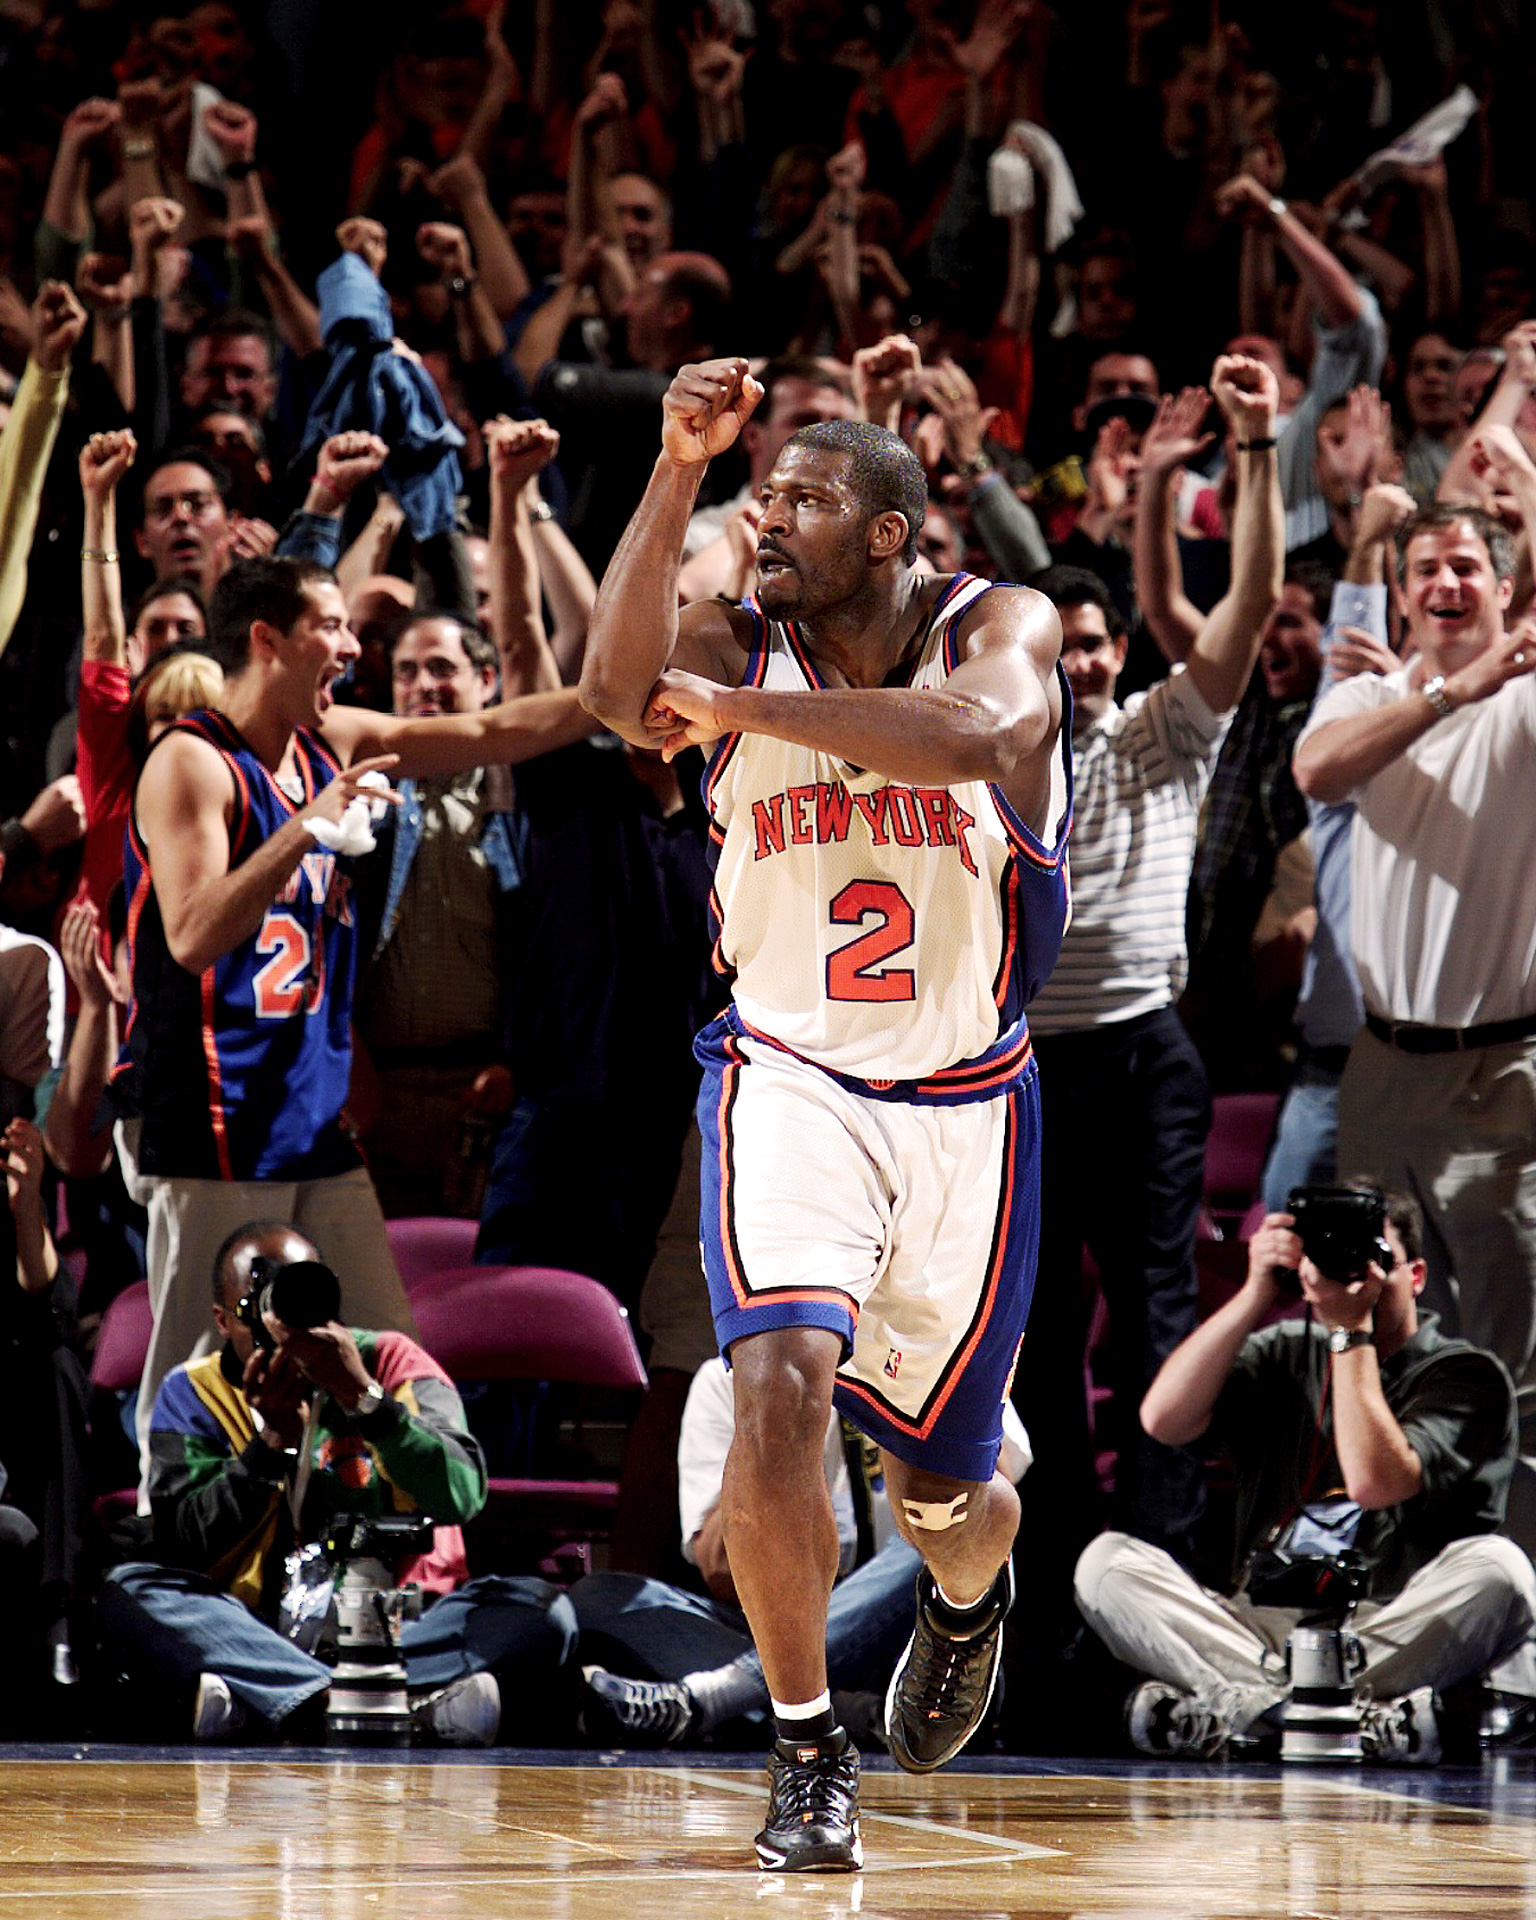 18. Larry Johnson - The 25 Greatest Knicks - ESPN